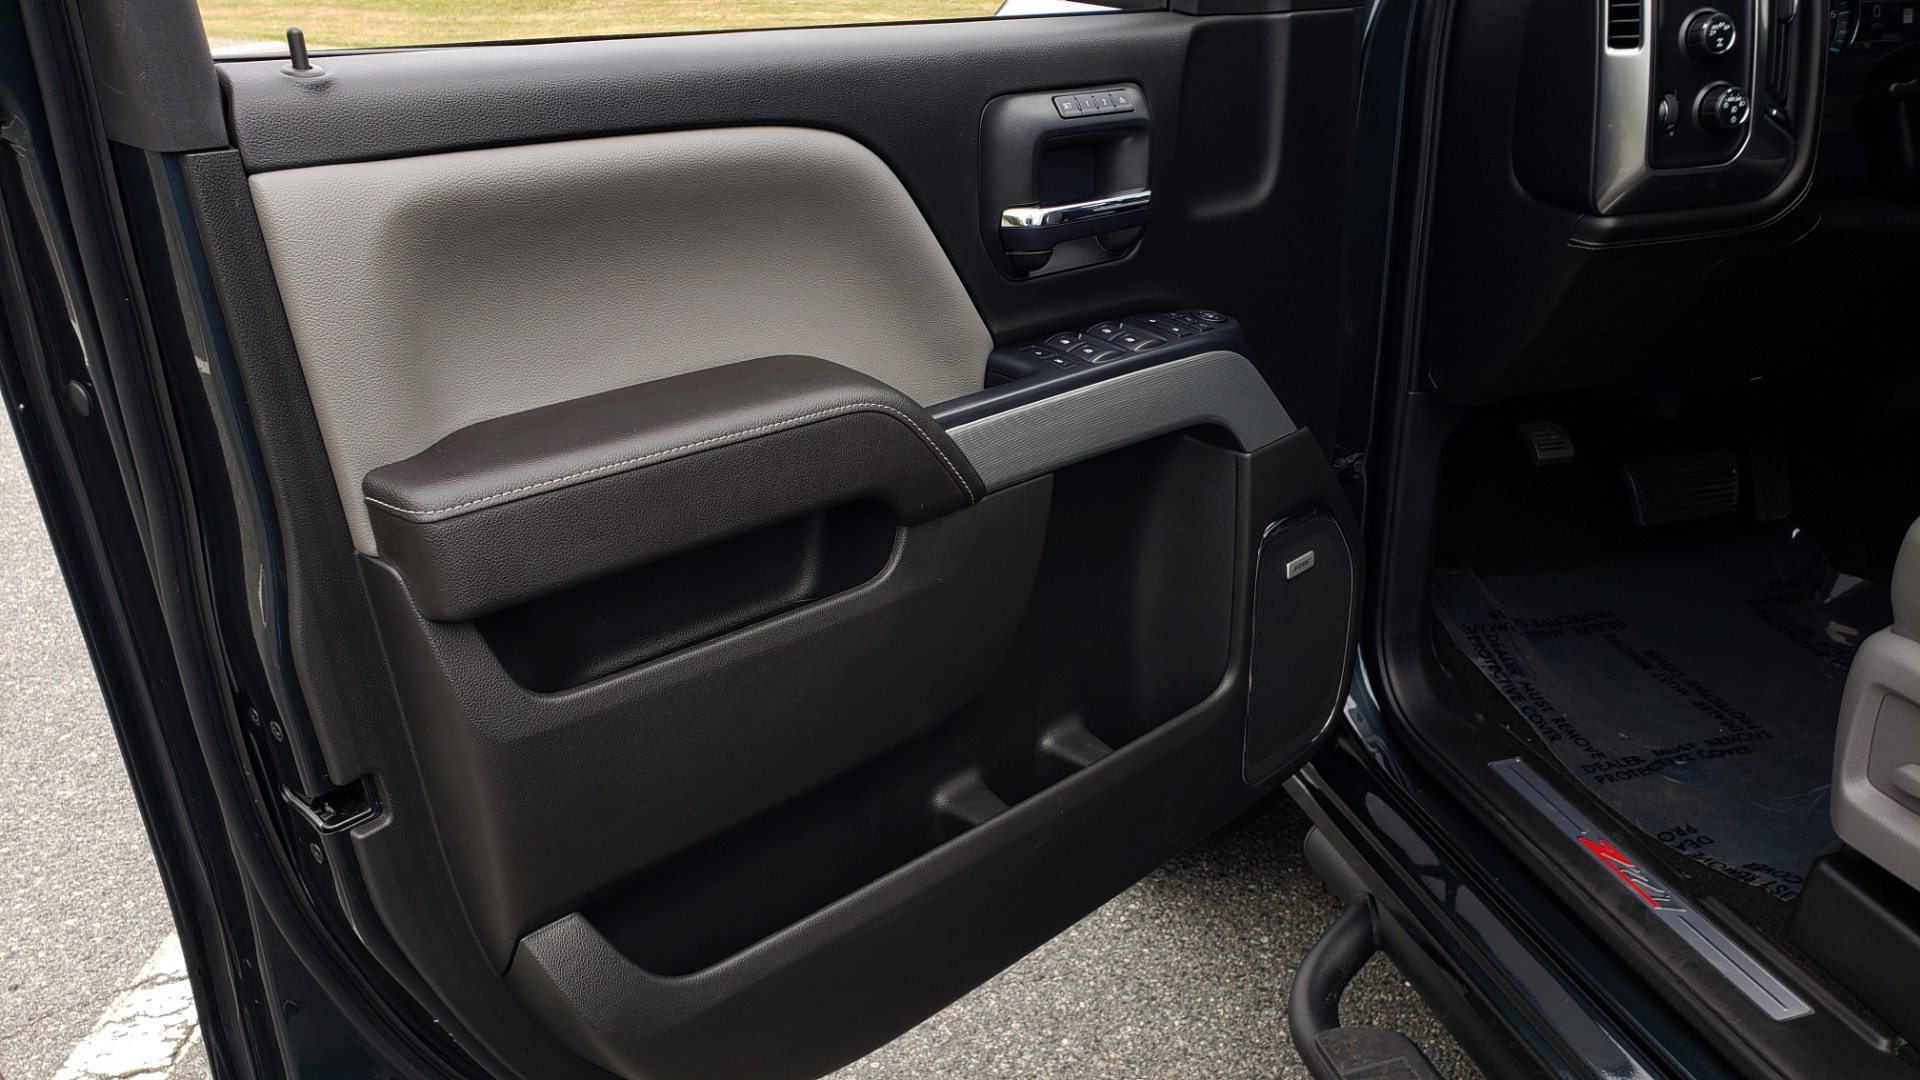 Used 2017 Chevrolet SILVERADO 1500 LTZ 4WD / NAV / BOSE / LEATHER / CAMERA / LOADED for sale Sold at Formula Imports in Charlotte NC 28227 46